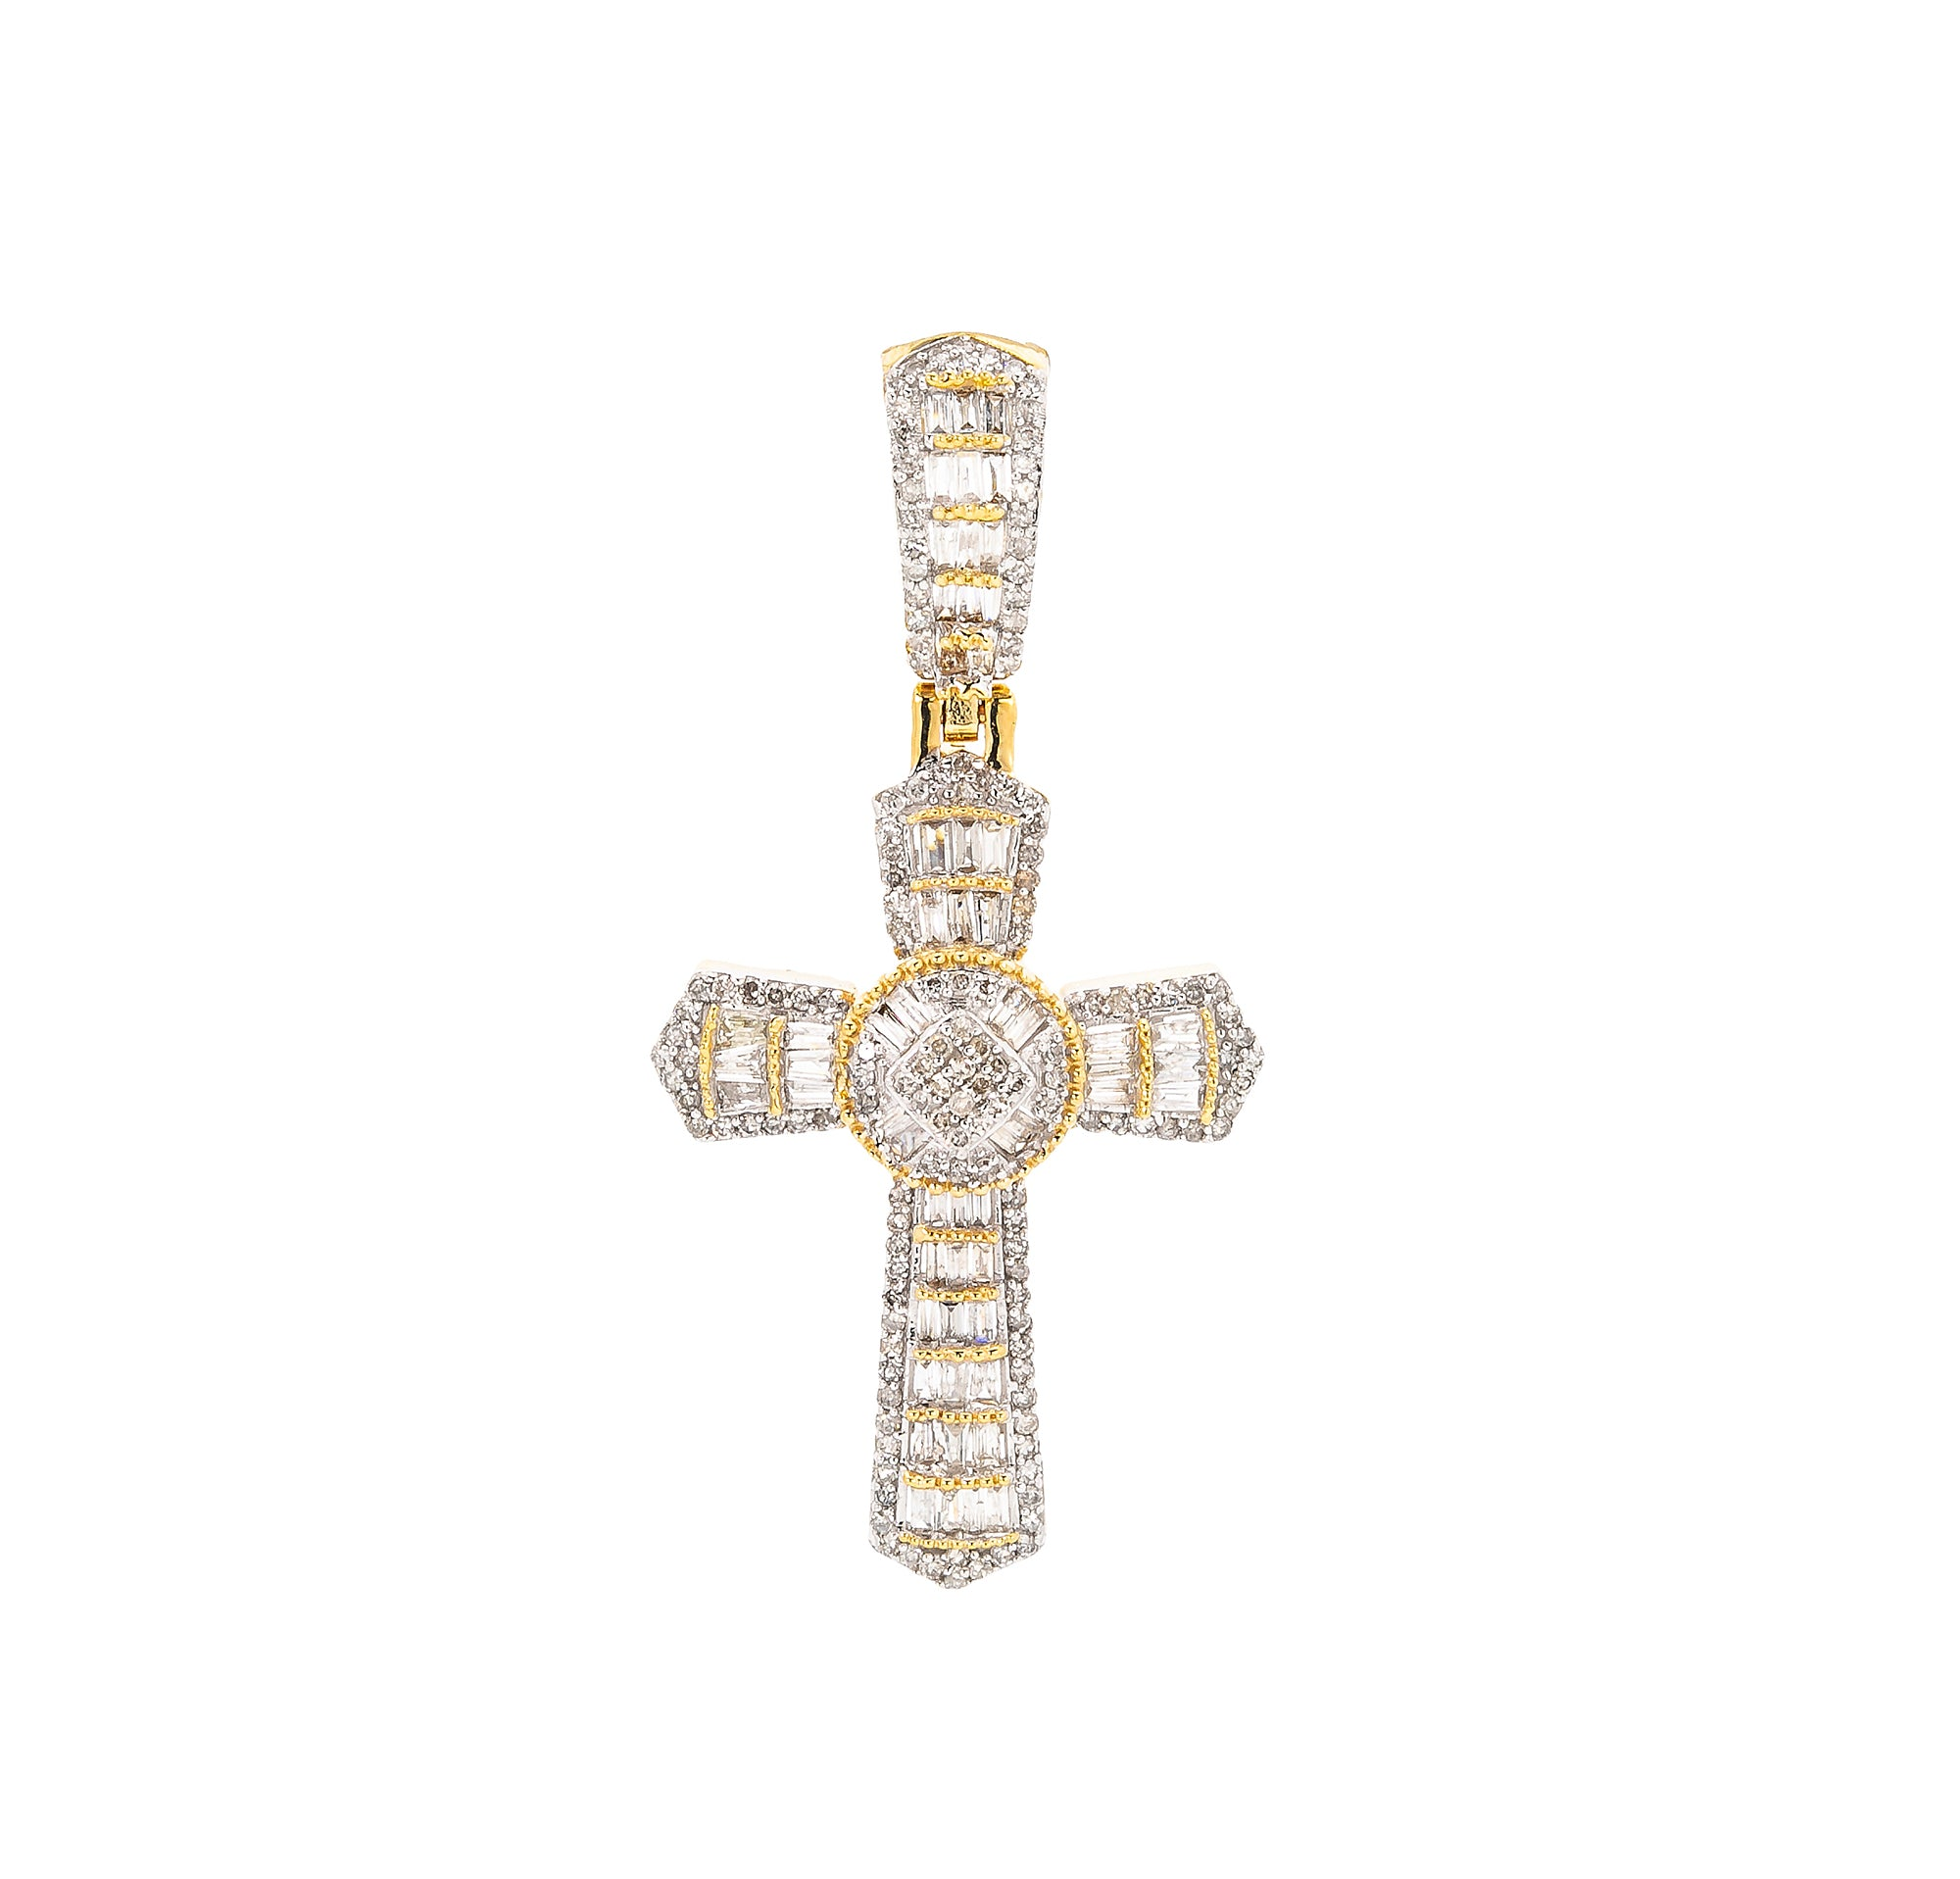 Unisex 14K Yellow Gold Cross Pendant with 0.98 CT Diamonds